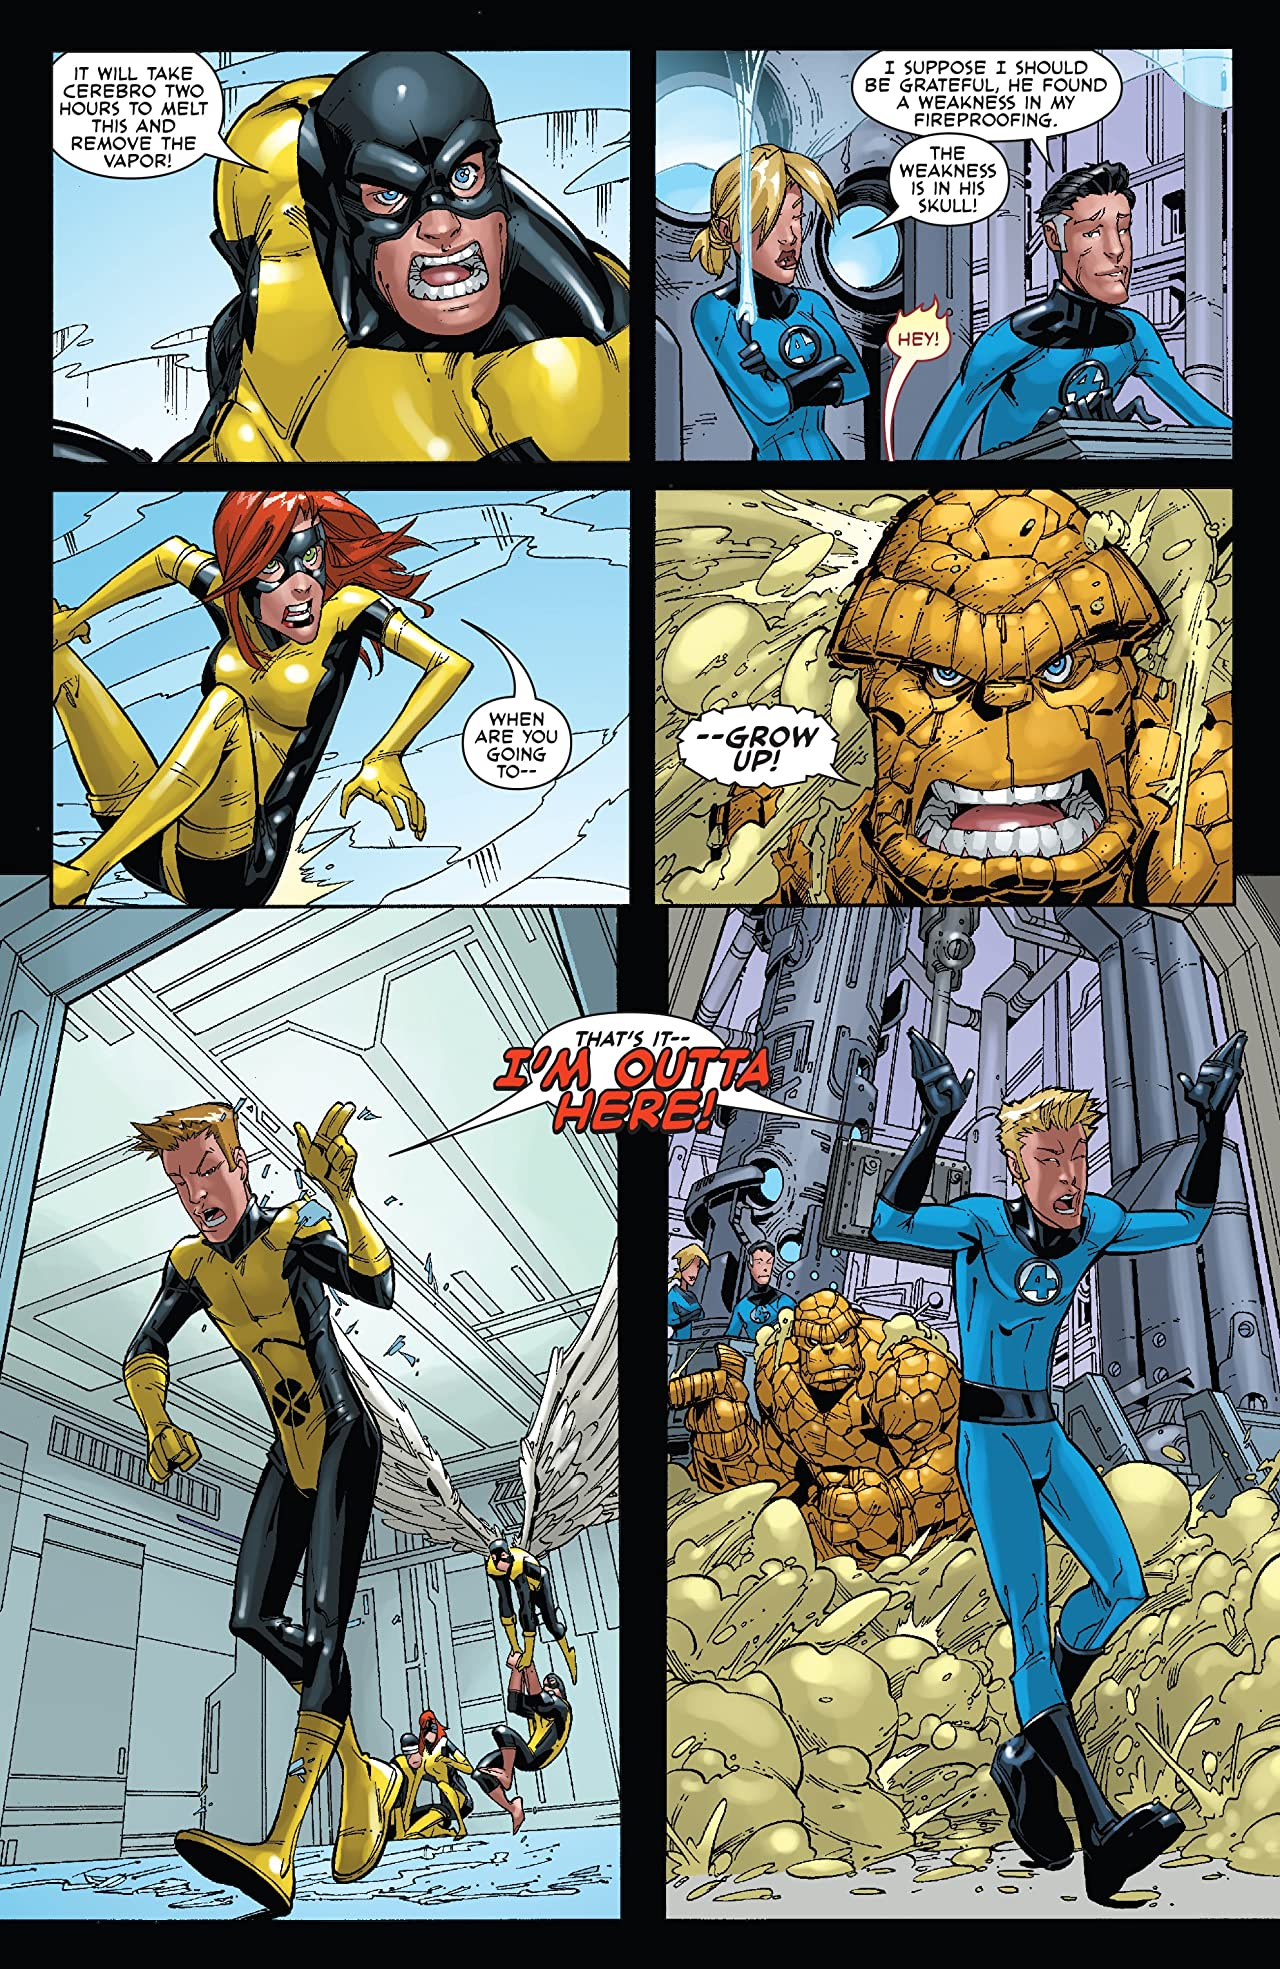 X-Men: First Class II #16